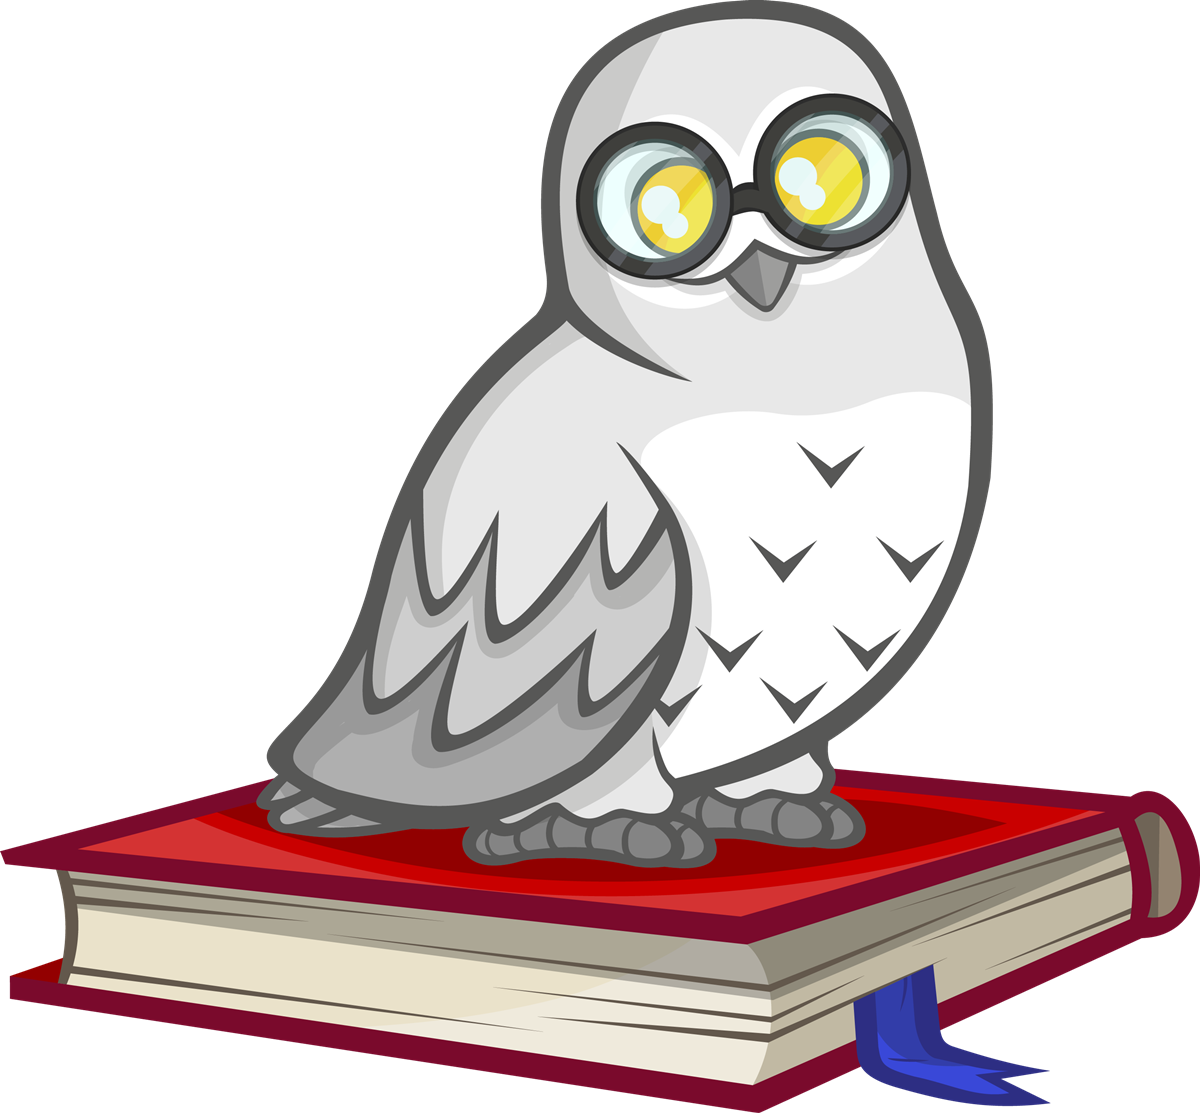 Owl clip art snow owl. Free to use public